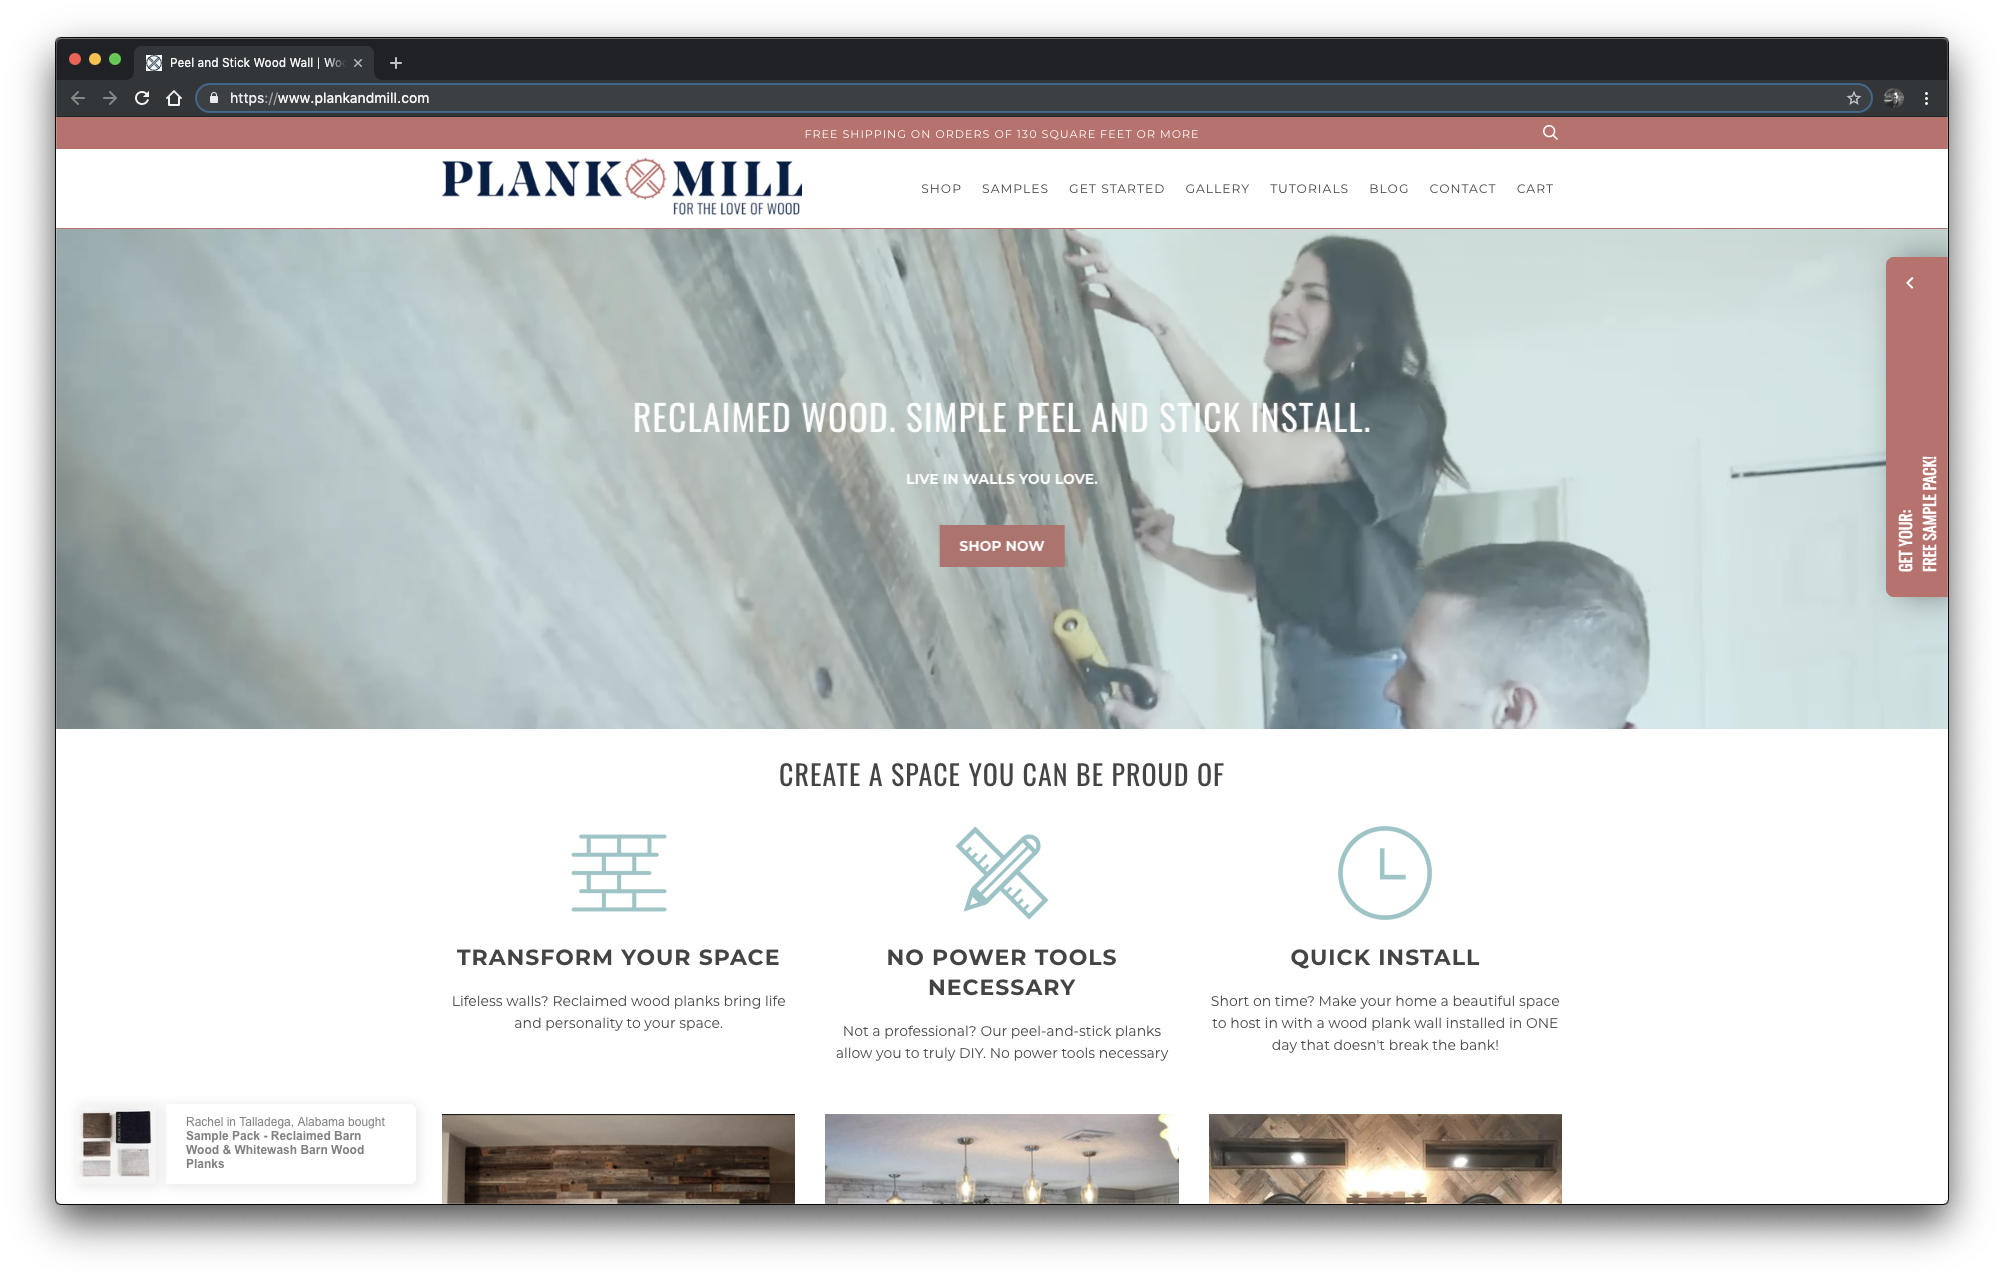 """What does    Plank and Mill    sell? Reclaimed wood that's easy to install. That's a compelling message for DIYers, and they get straight to the point. There are explanatory blurbs to expand on each headline so the user doesn't have to wonder what """"Transform your space"""" actually means. All this, without even scrolling down the page."""